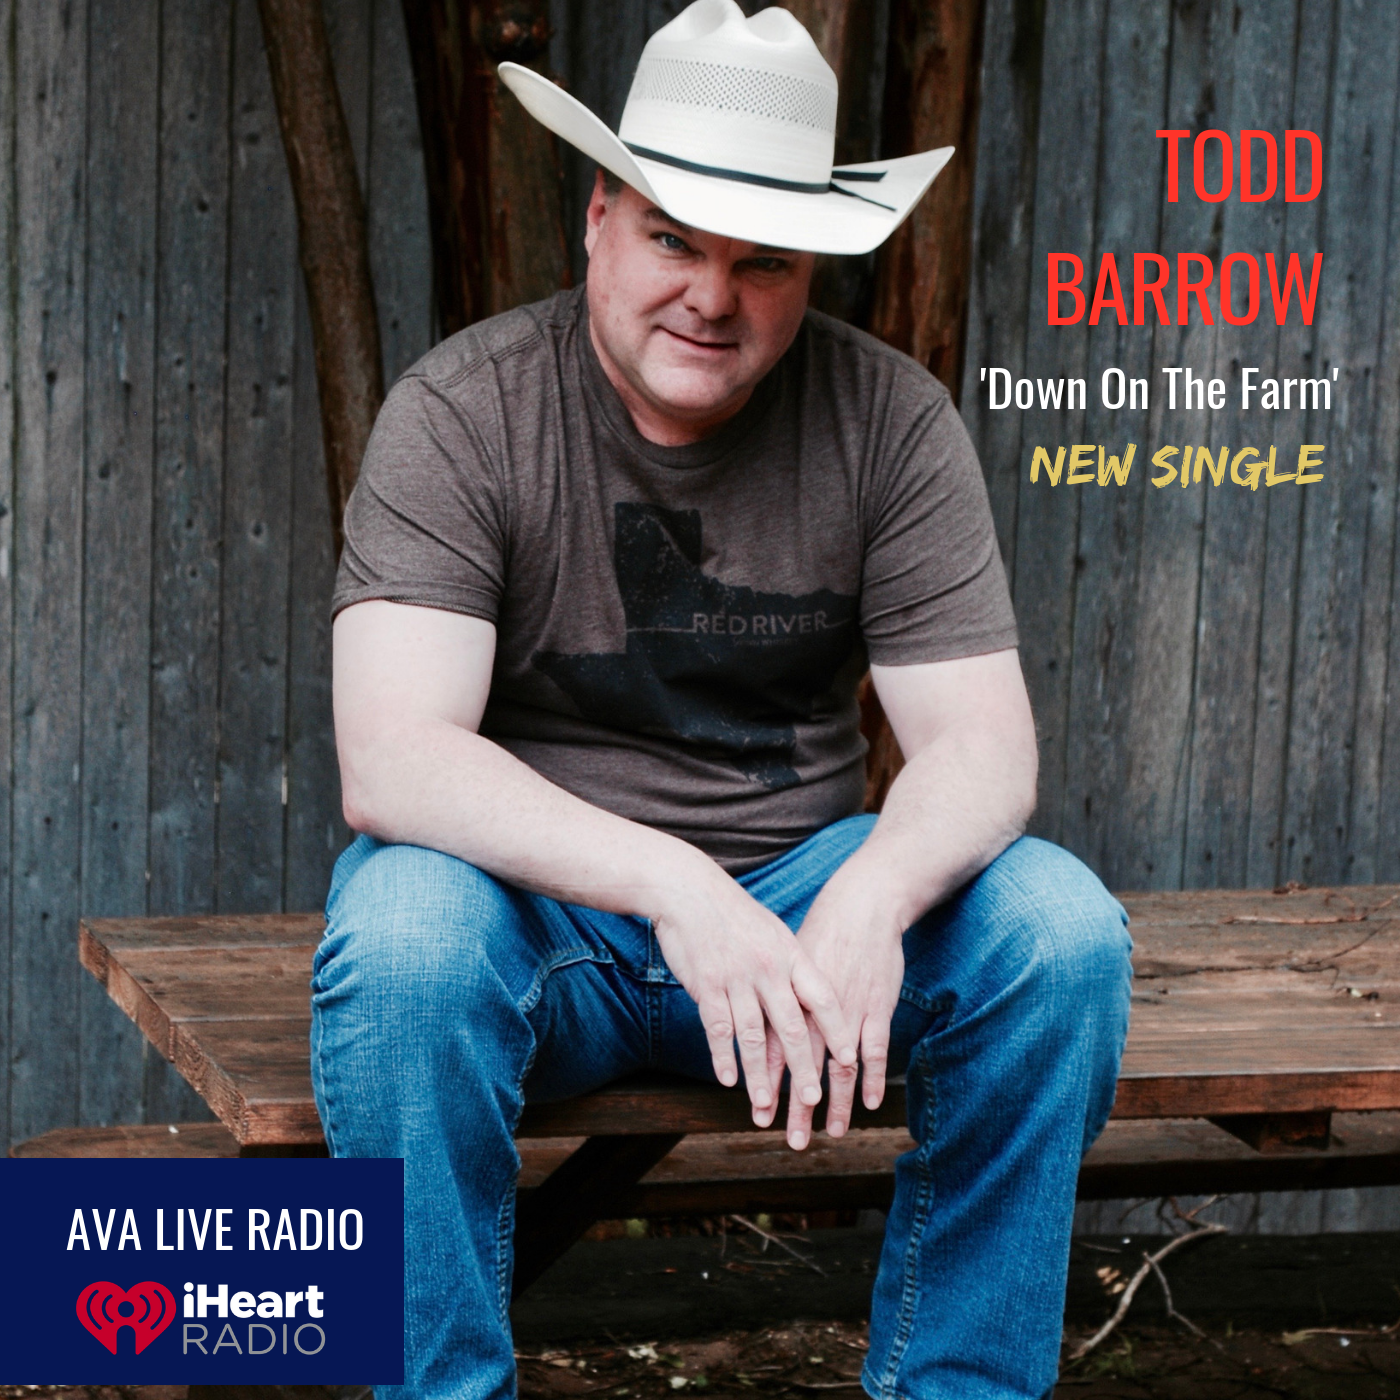 Todd barrow down on the farm .png